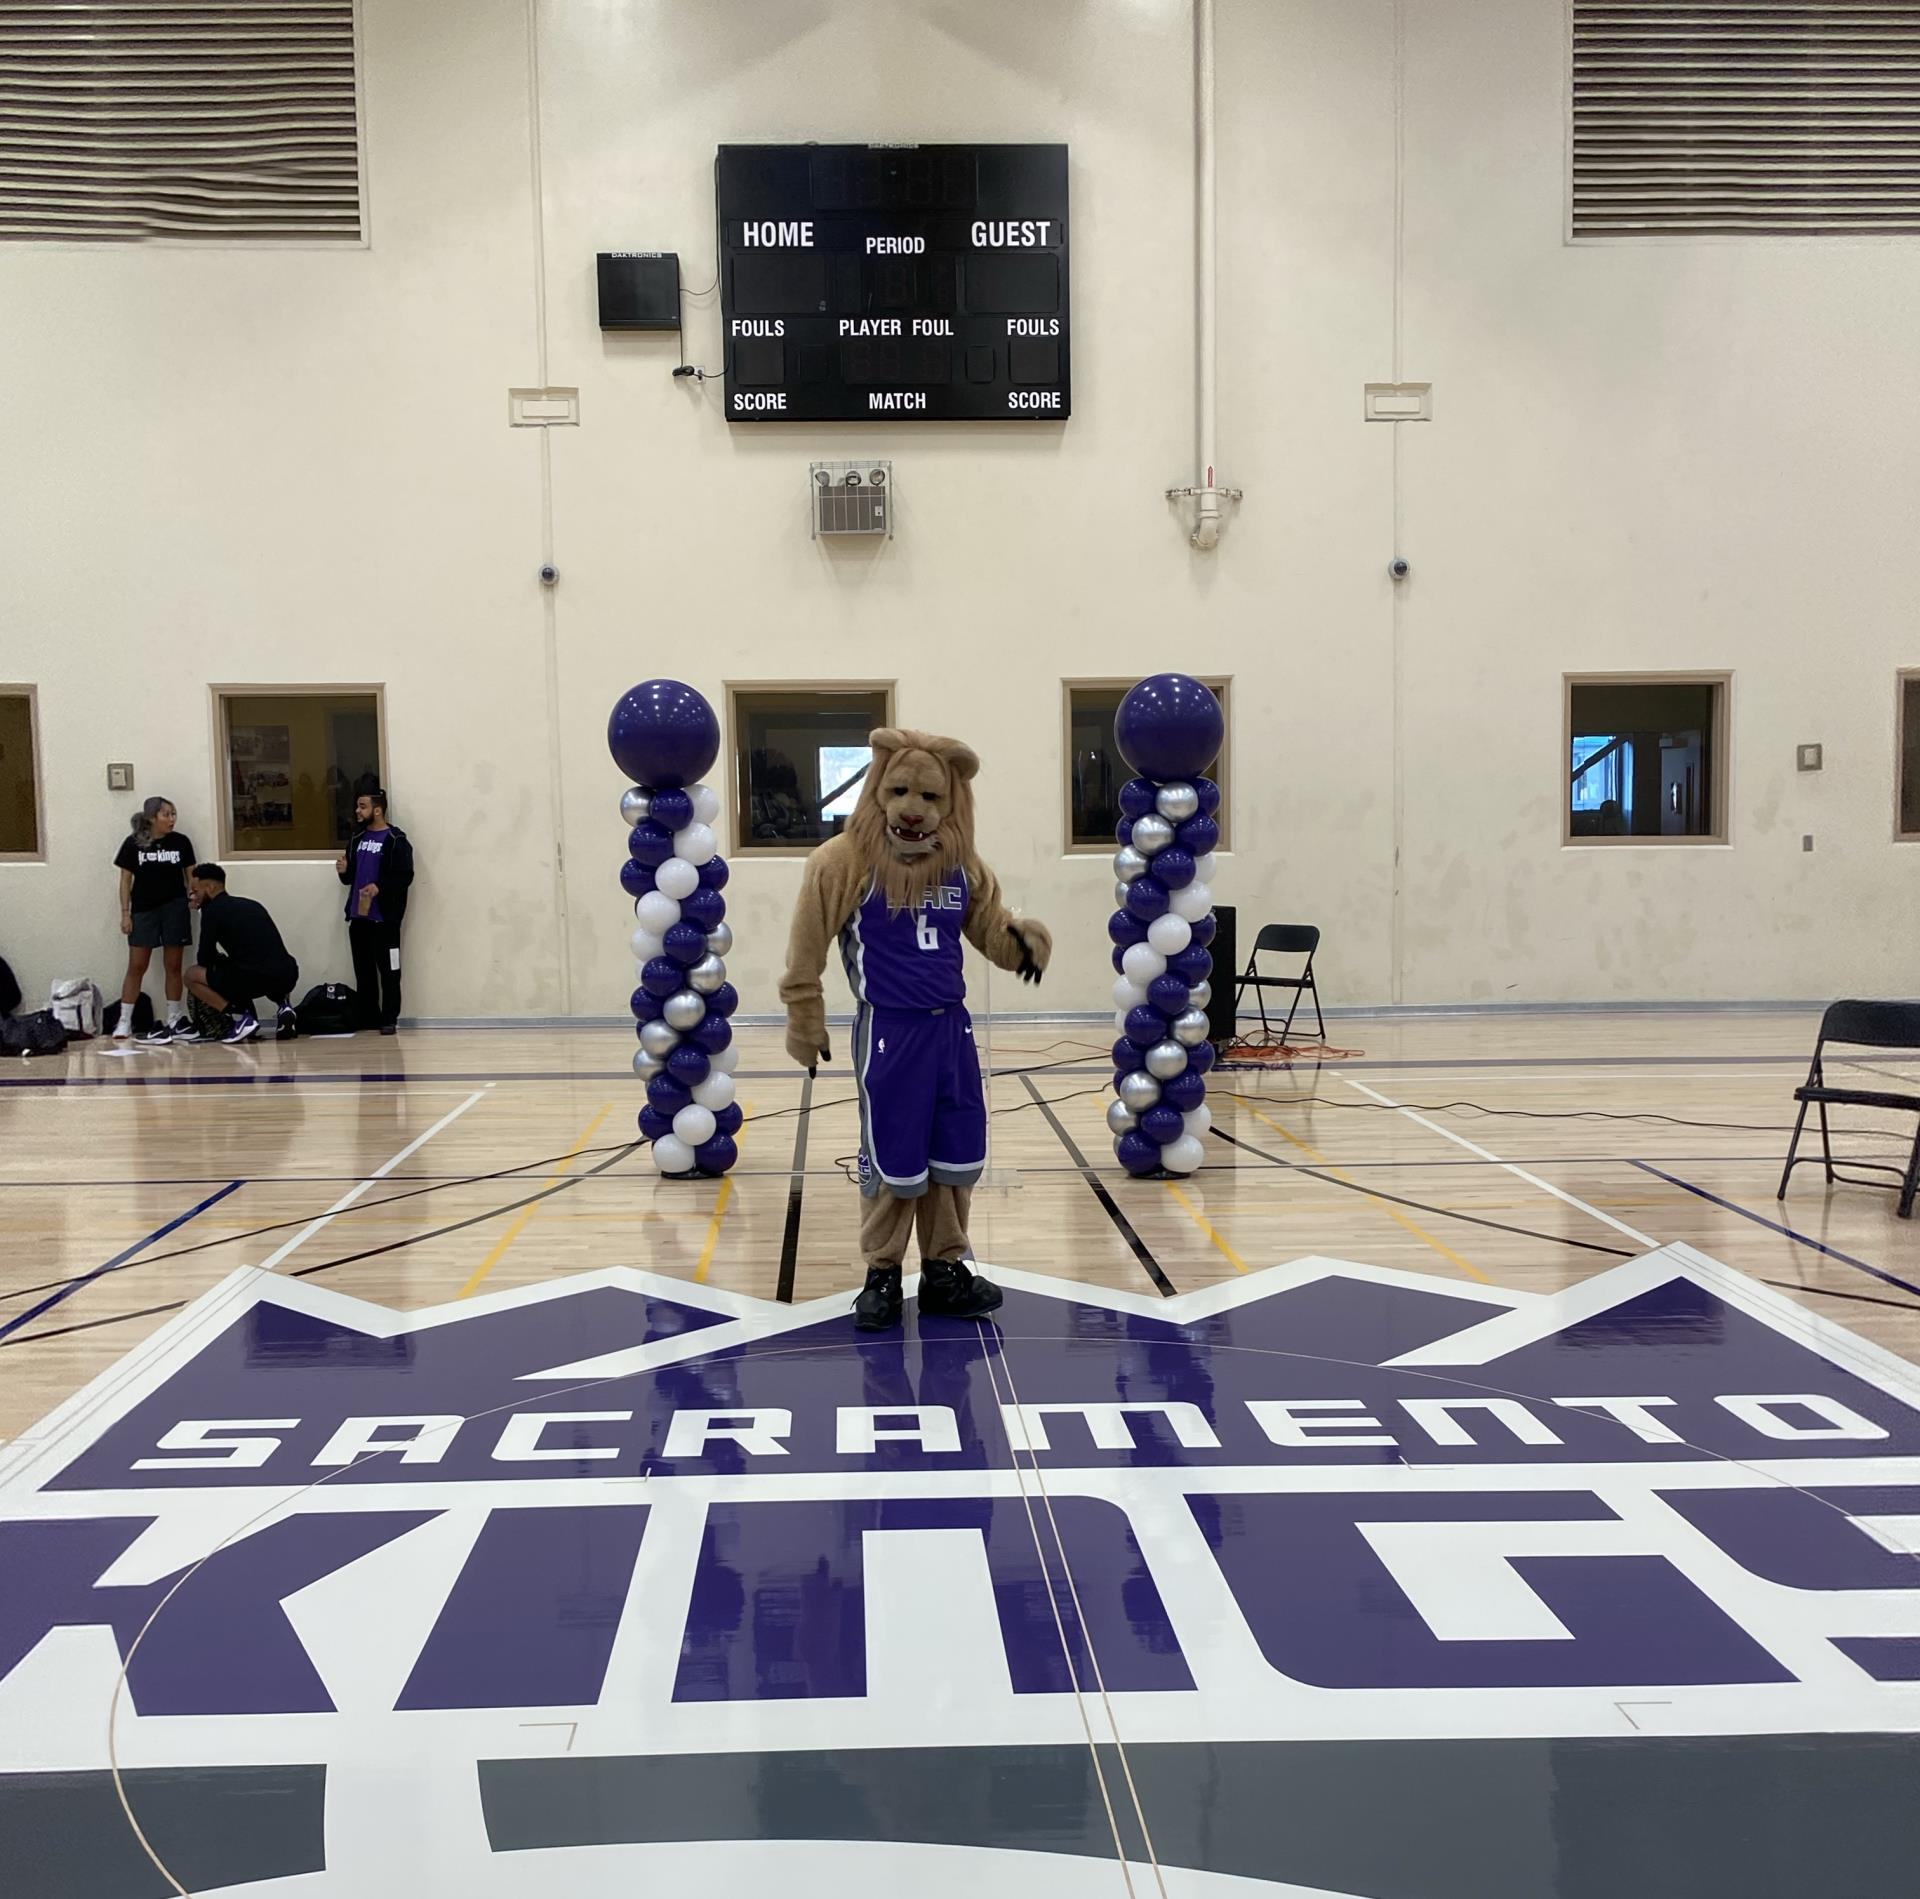 1-11-20 Rec Center court ribbon cutting-Slamson on Kings logo